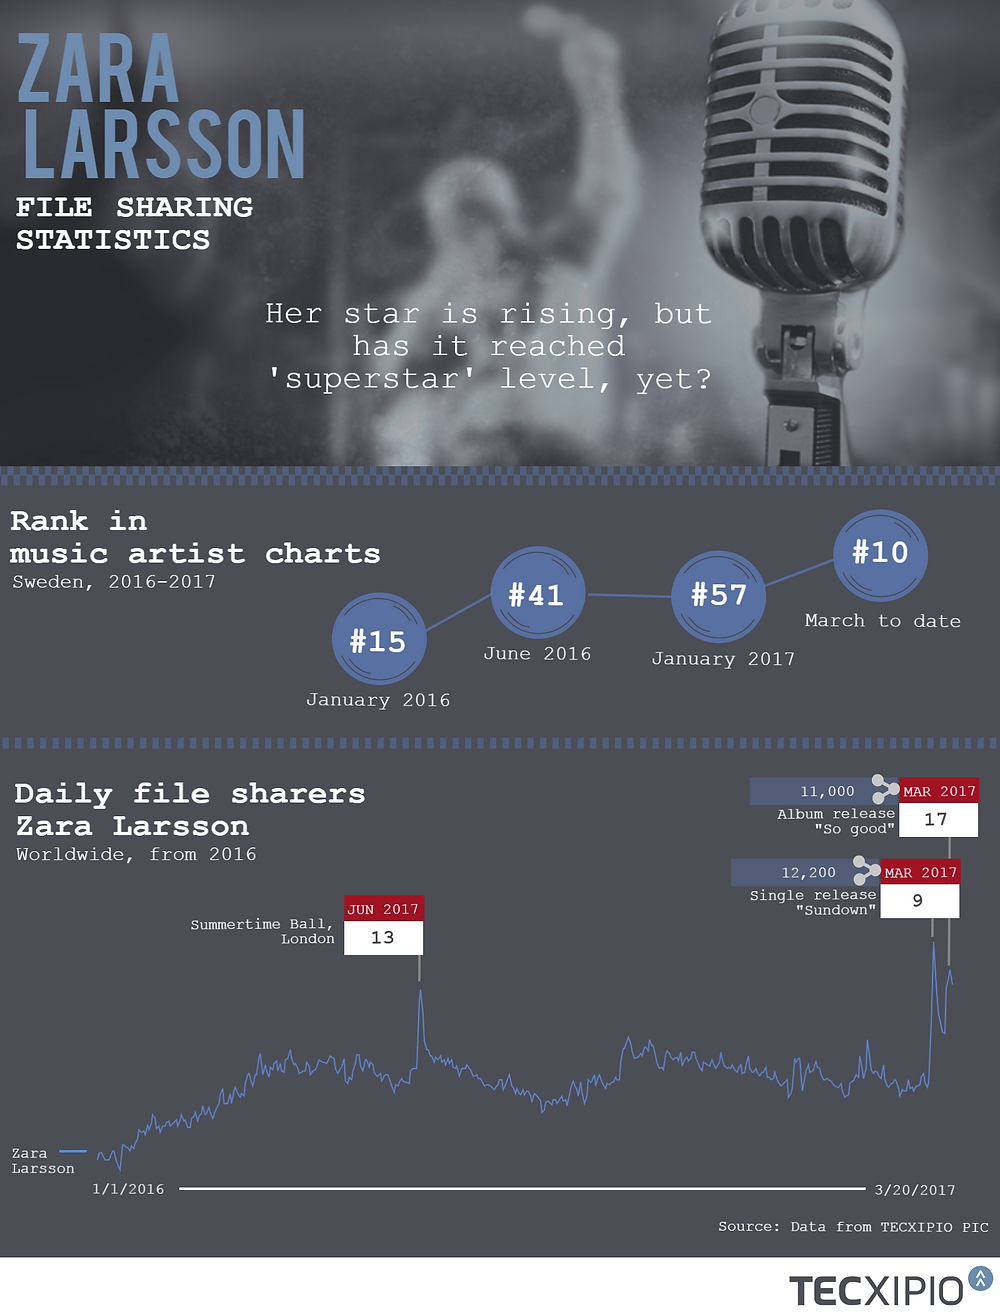 TECXIPIO infographic. File sharing statistics of Zara Larsson's music to analyze if she has reached superstar level, yet